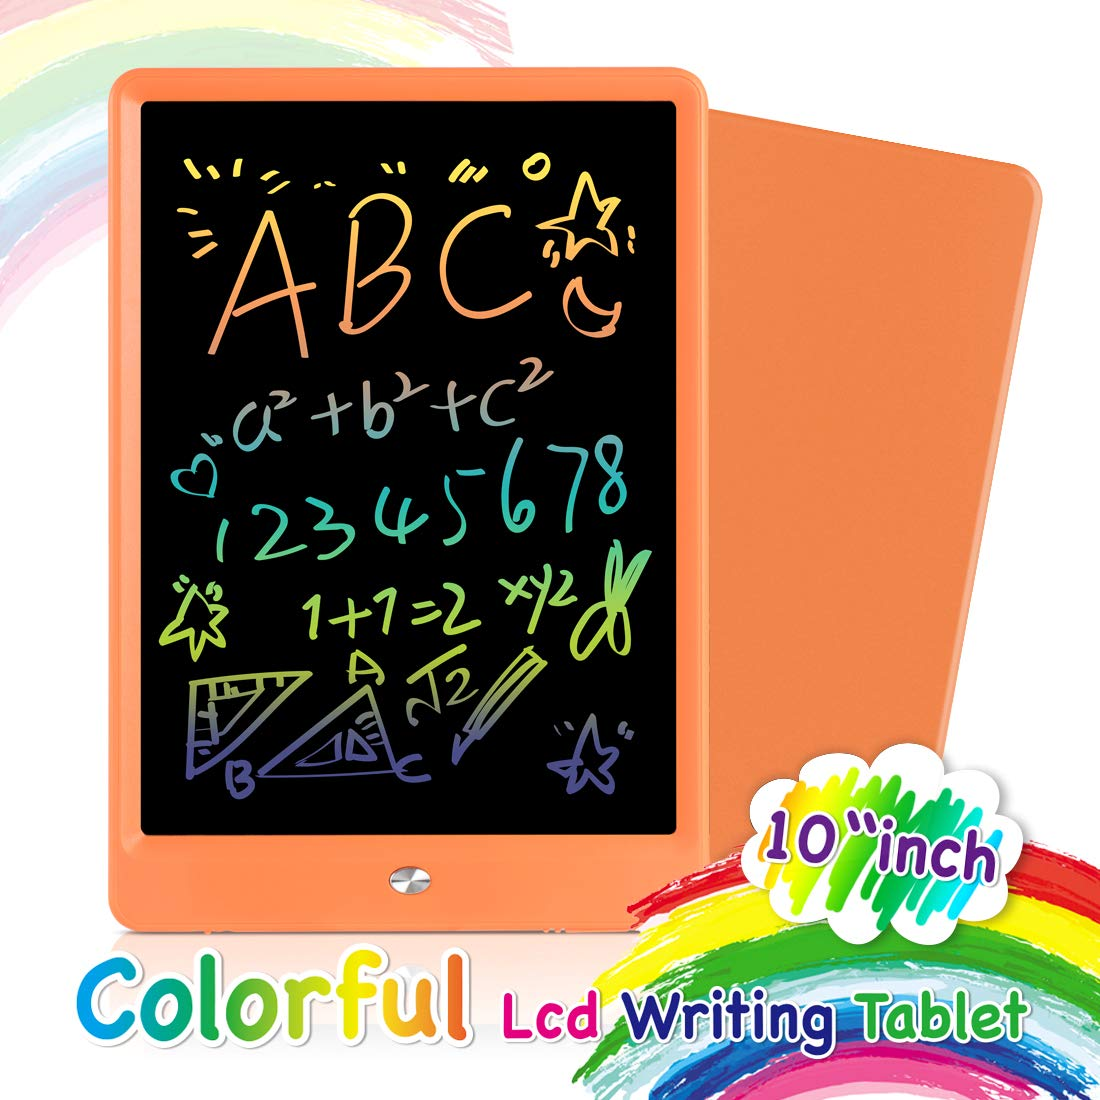 Orsen LCD Writing Tablet 10 Inch, Colorful Doodle Board Drawing Tablet, Erasable Reusable Writing Pad, Educational Boys Girls Toys Gifts for 2-6 Year Old Girls Boys(Orange)